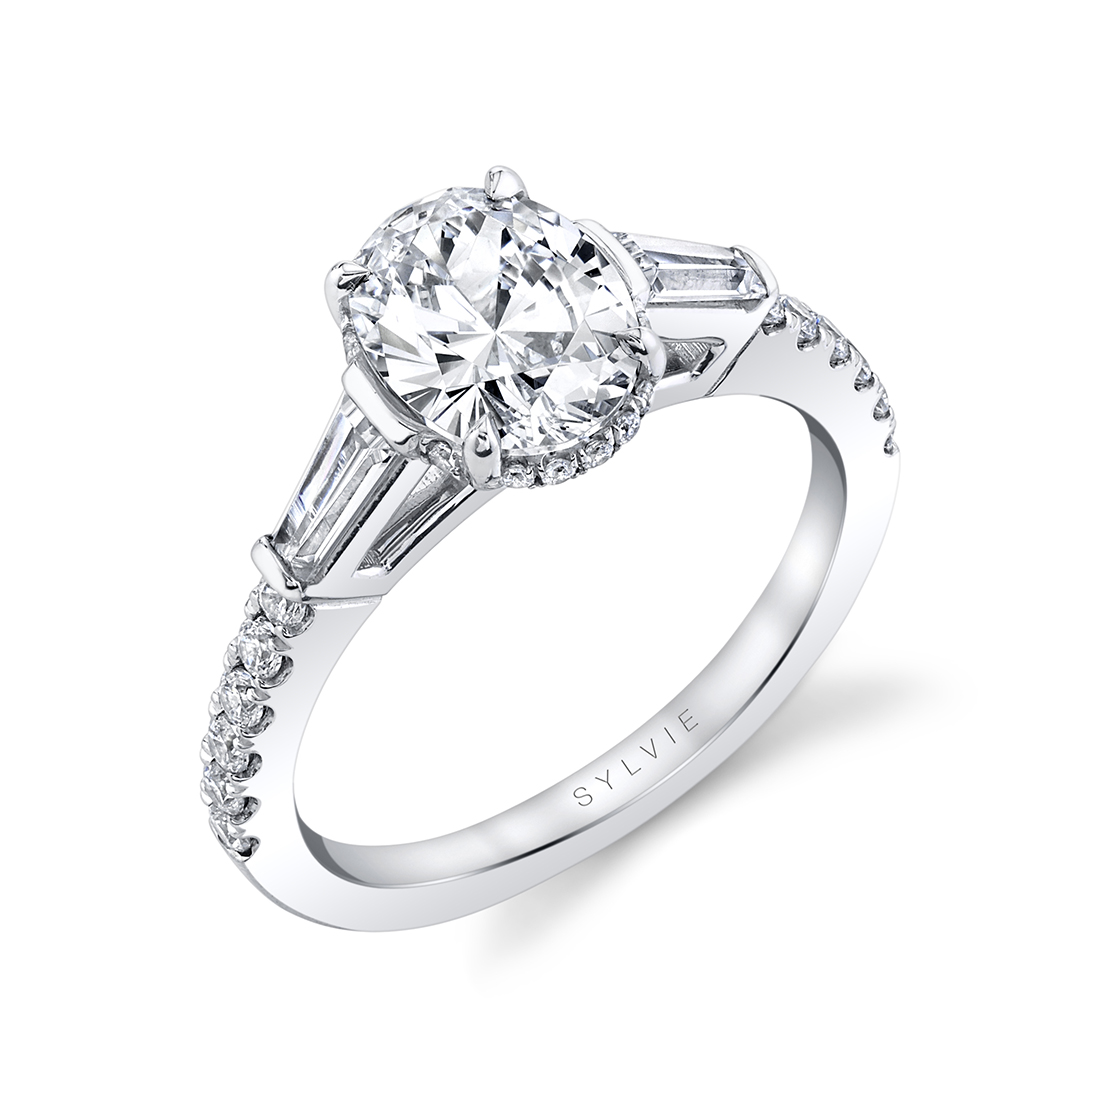 Oval engagement ring with baguette side stones  by Sylvie